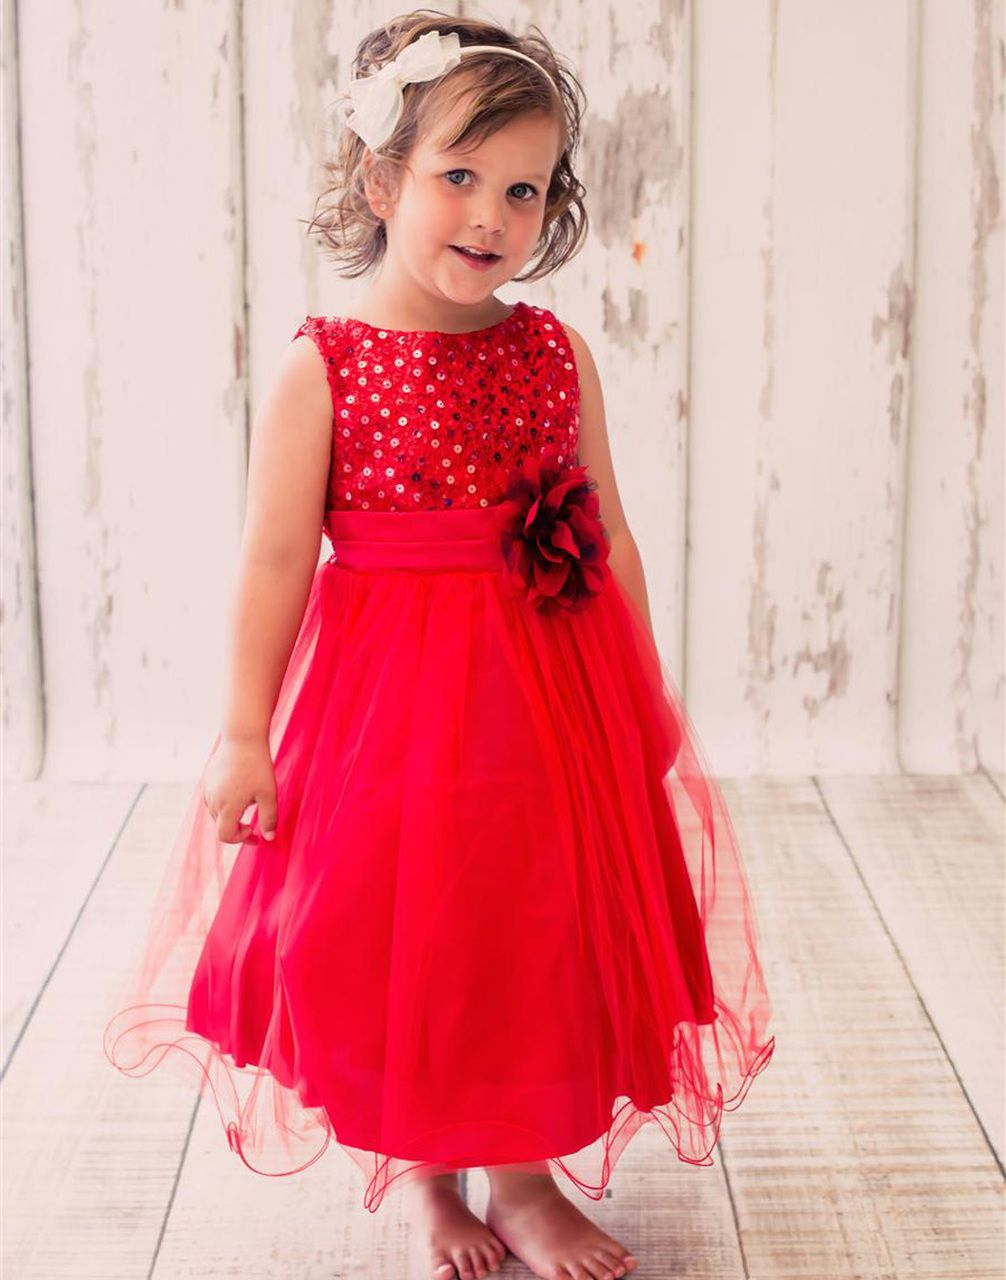 Glittery sequined bodice and double layered mesh dress dresscouture